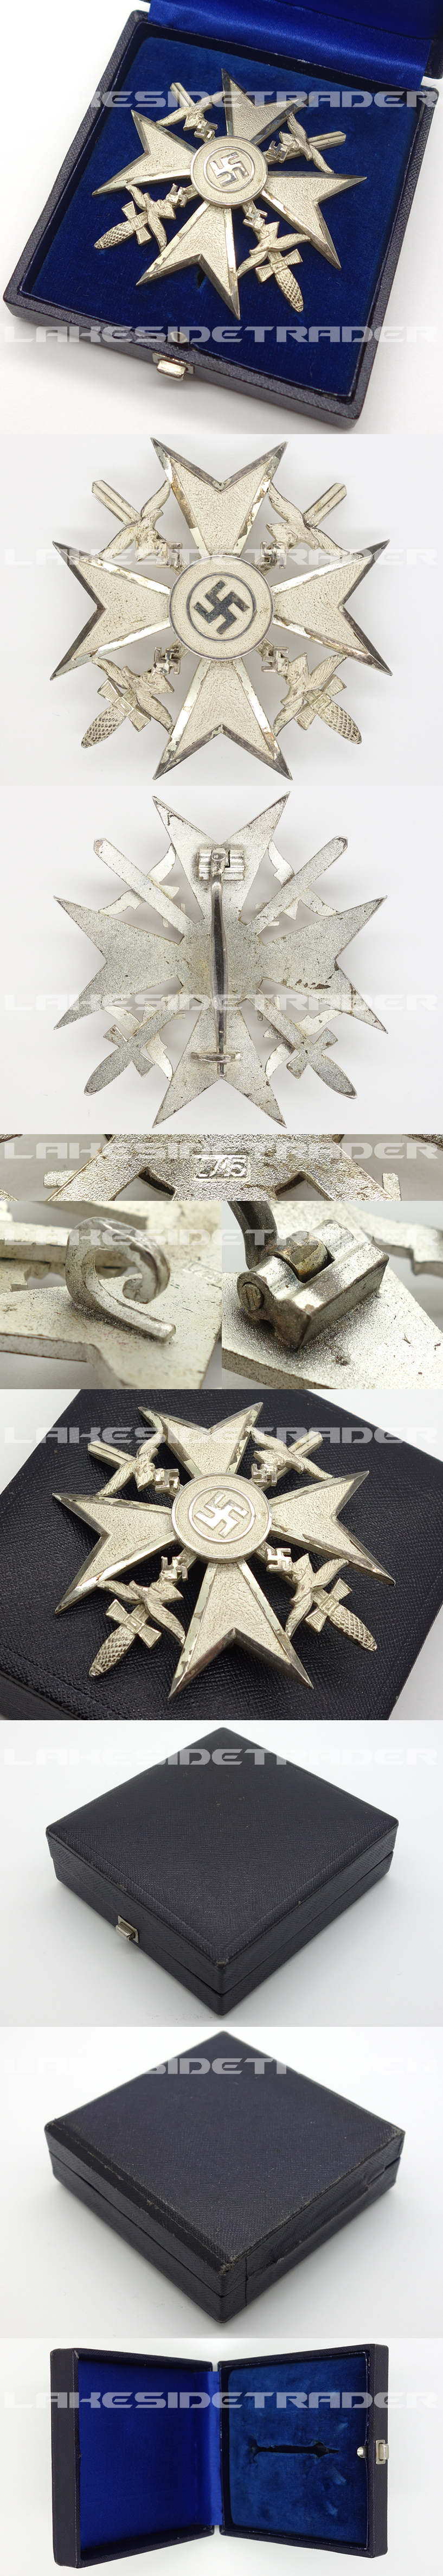 Spanish Cross with Swords in Silver by L/15